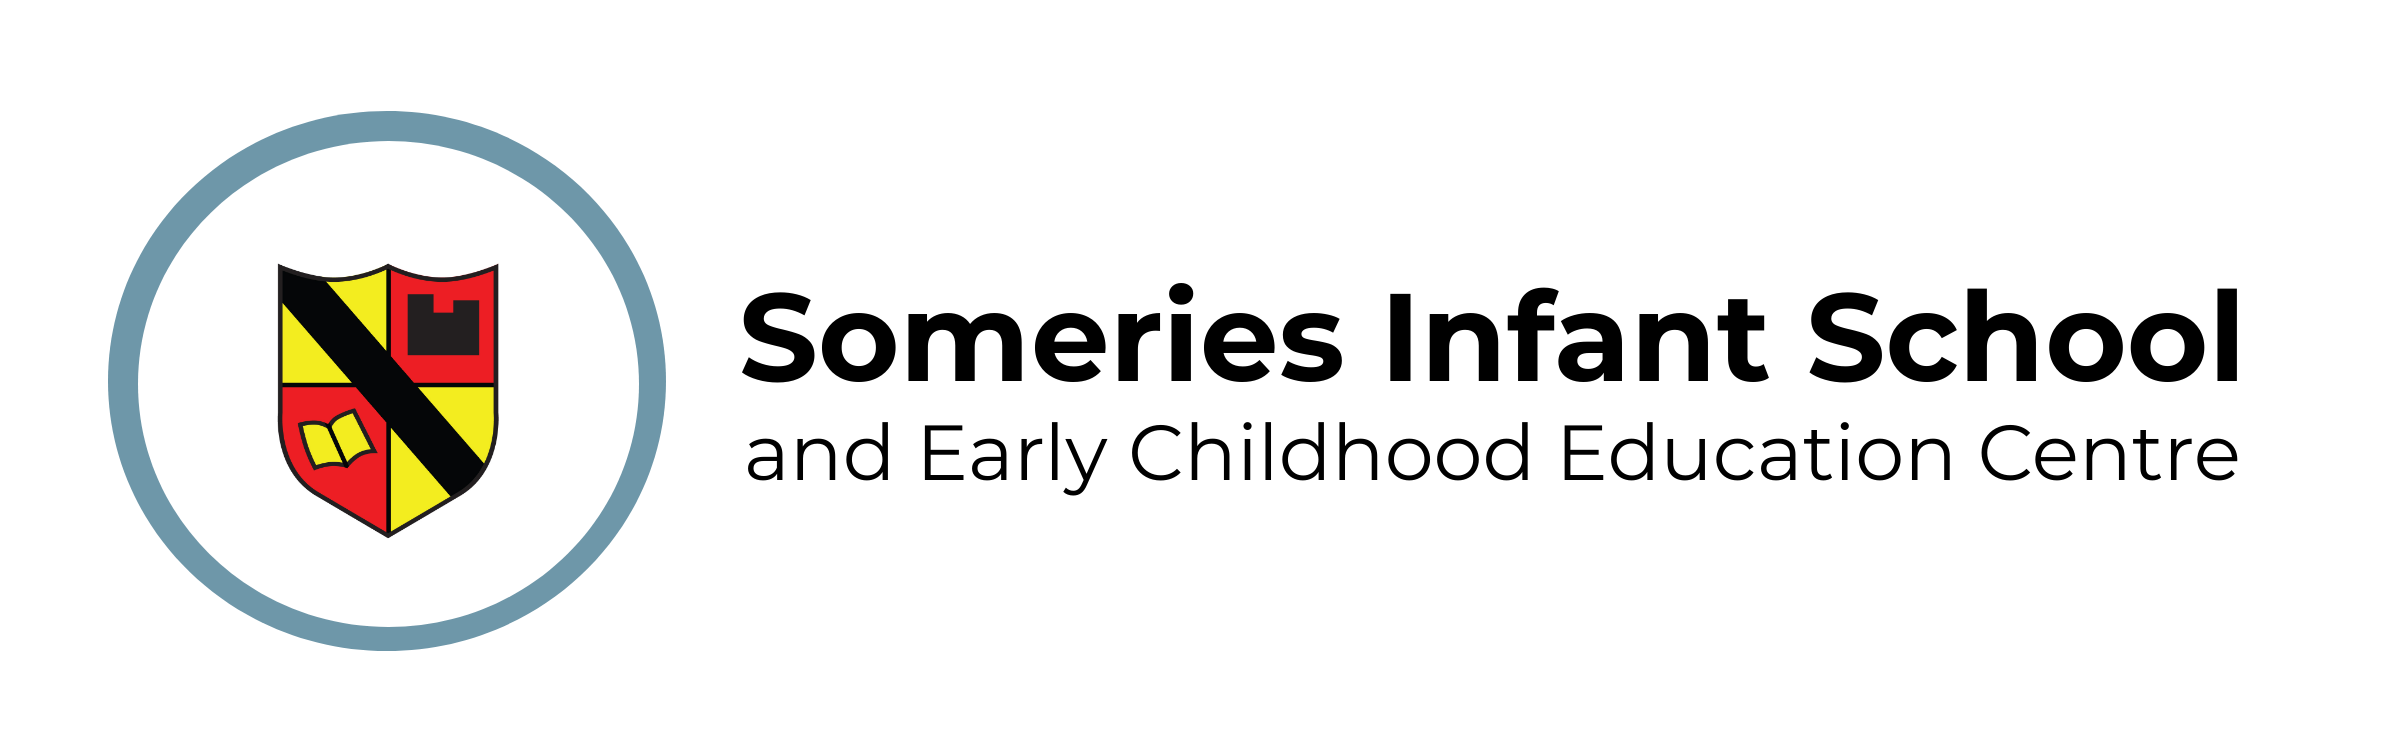 Someries Infant School & Early Childhood Education Centre - All children deserve the best – the best education, the best pastoral care and the best learning environment